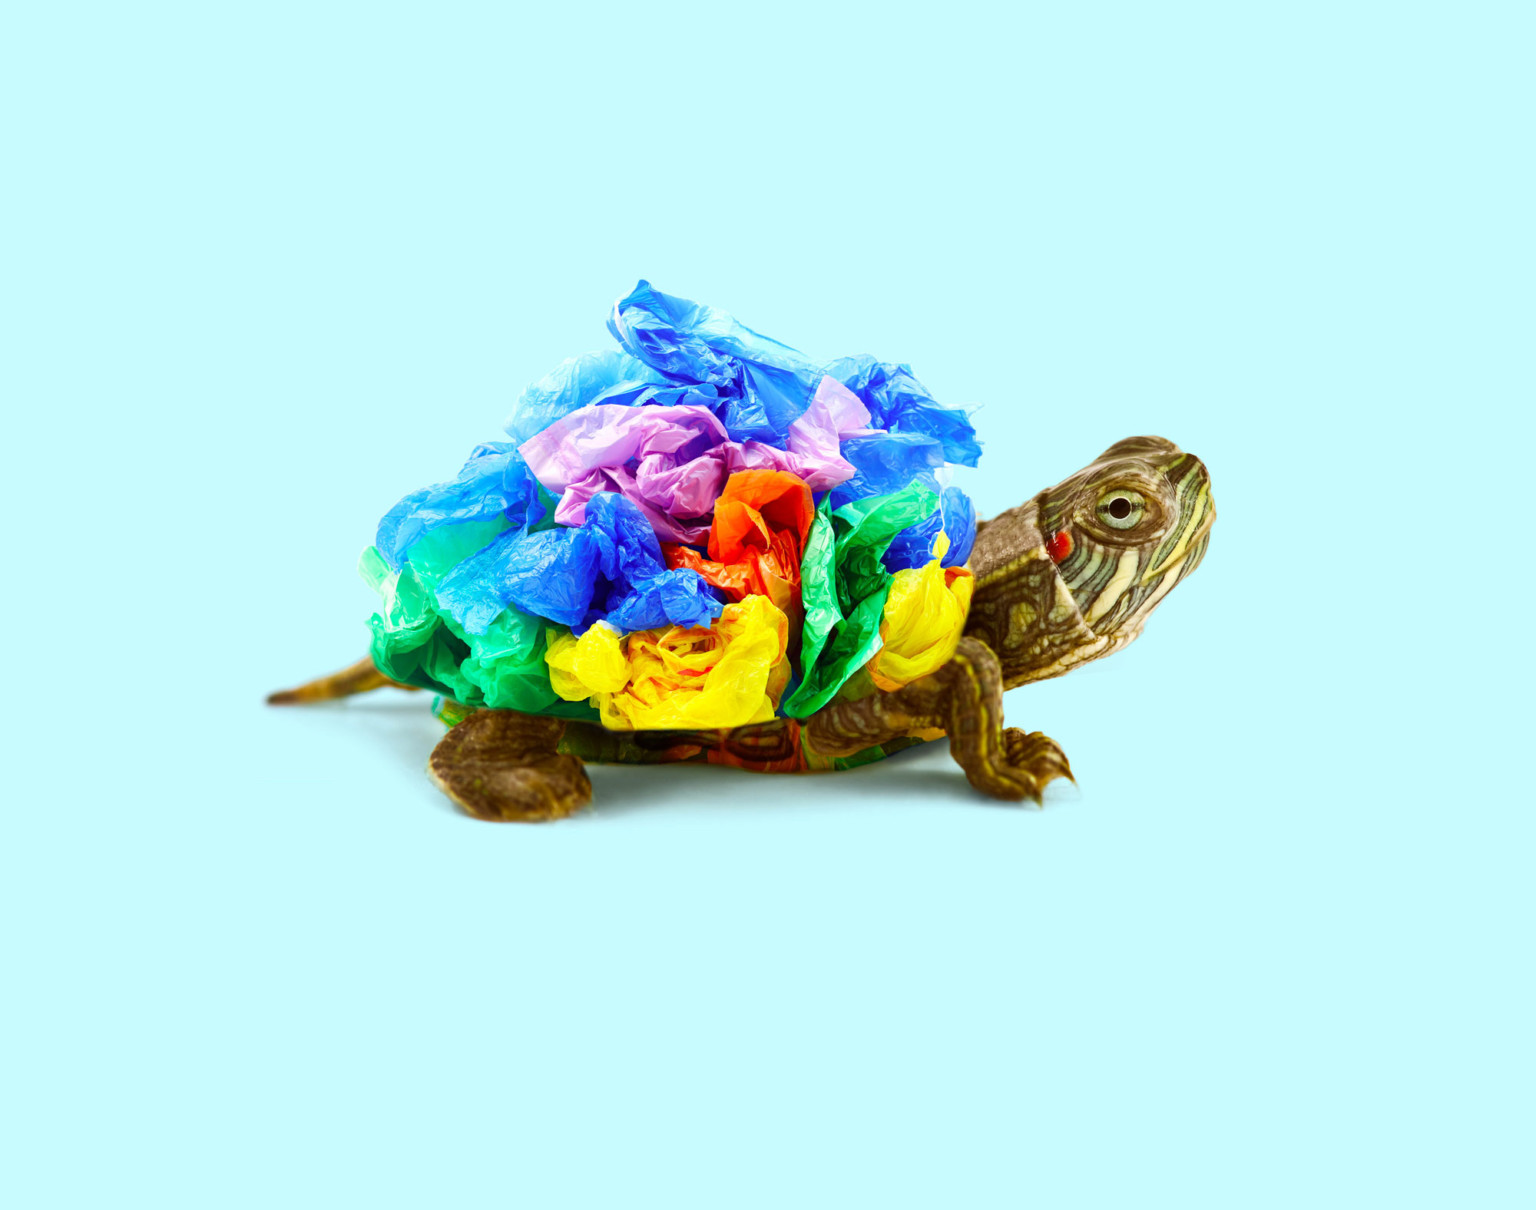 trash-turtle-768x605@2x